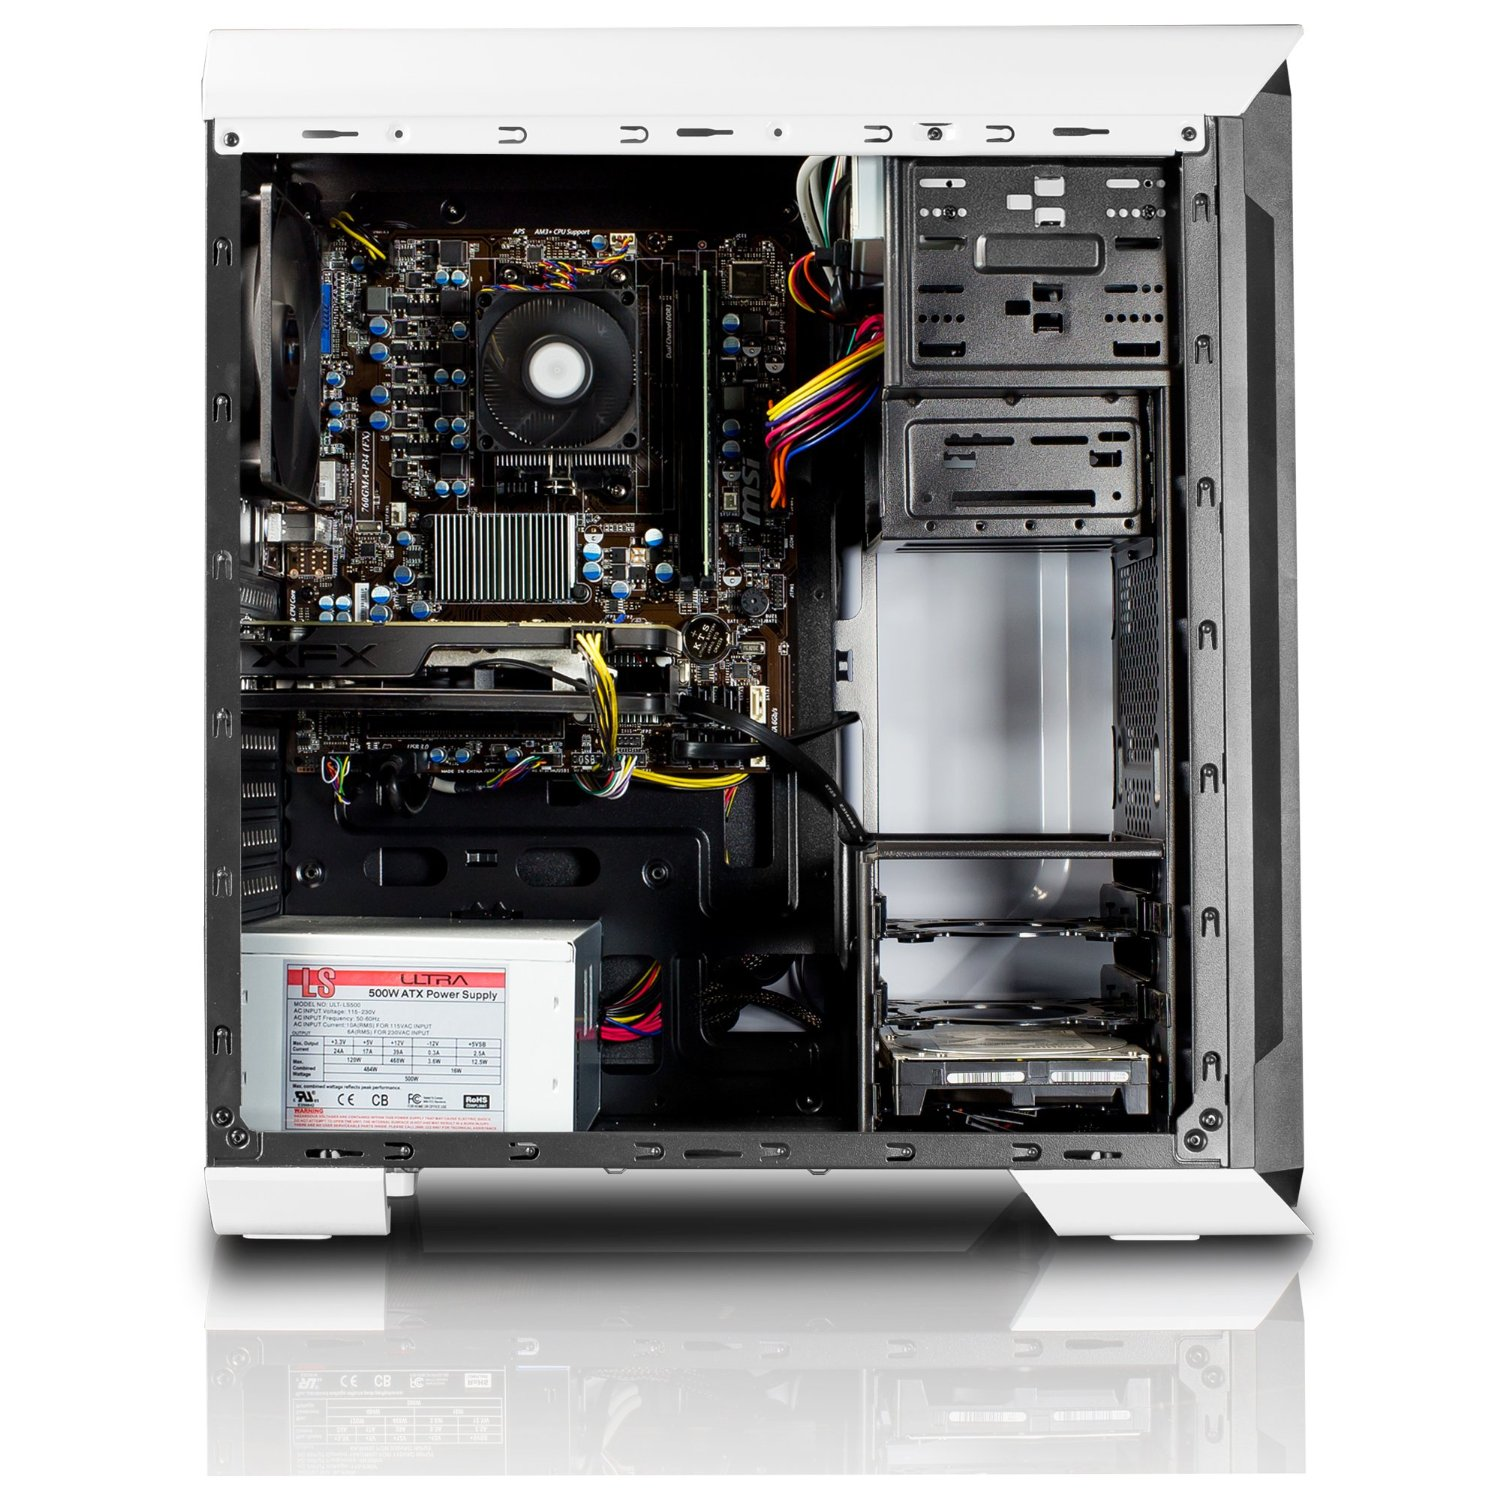 See More Hot 100 Desktop Computers